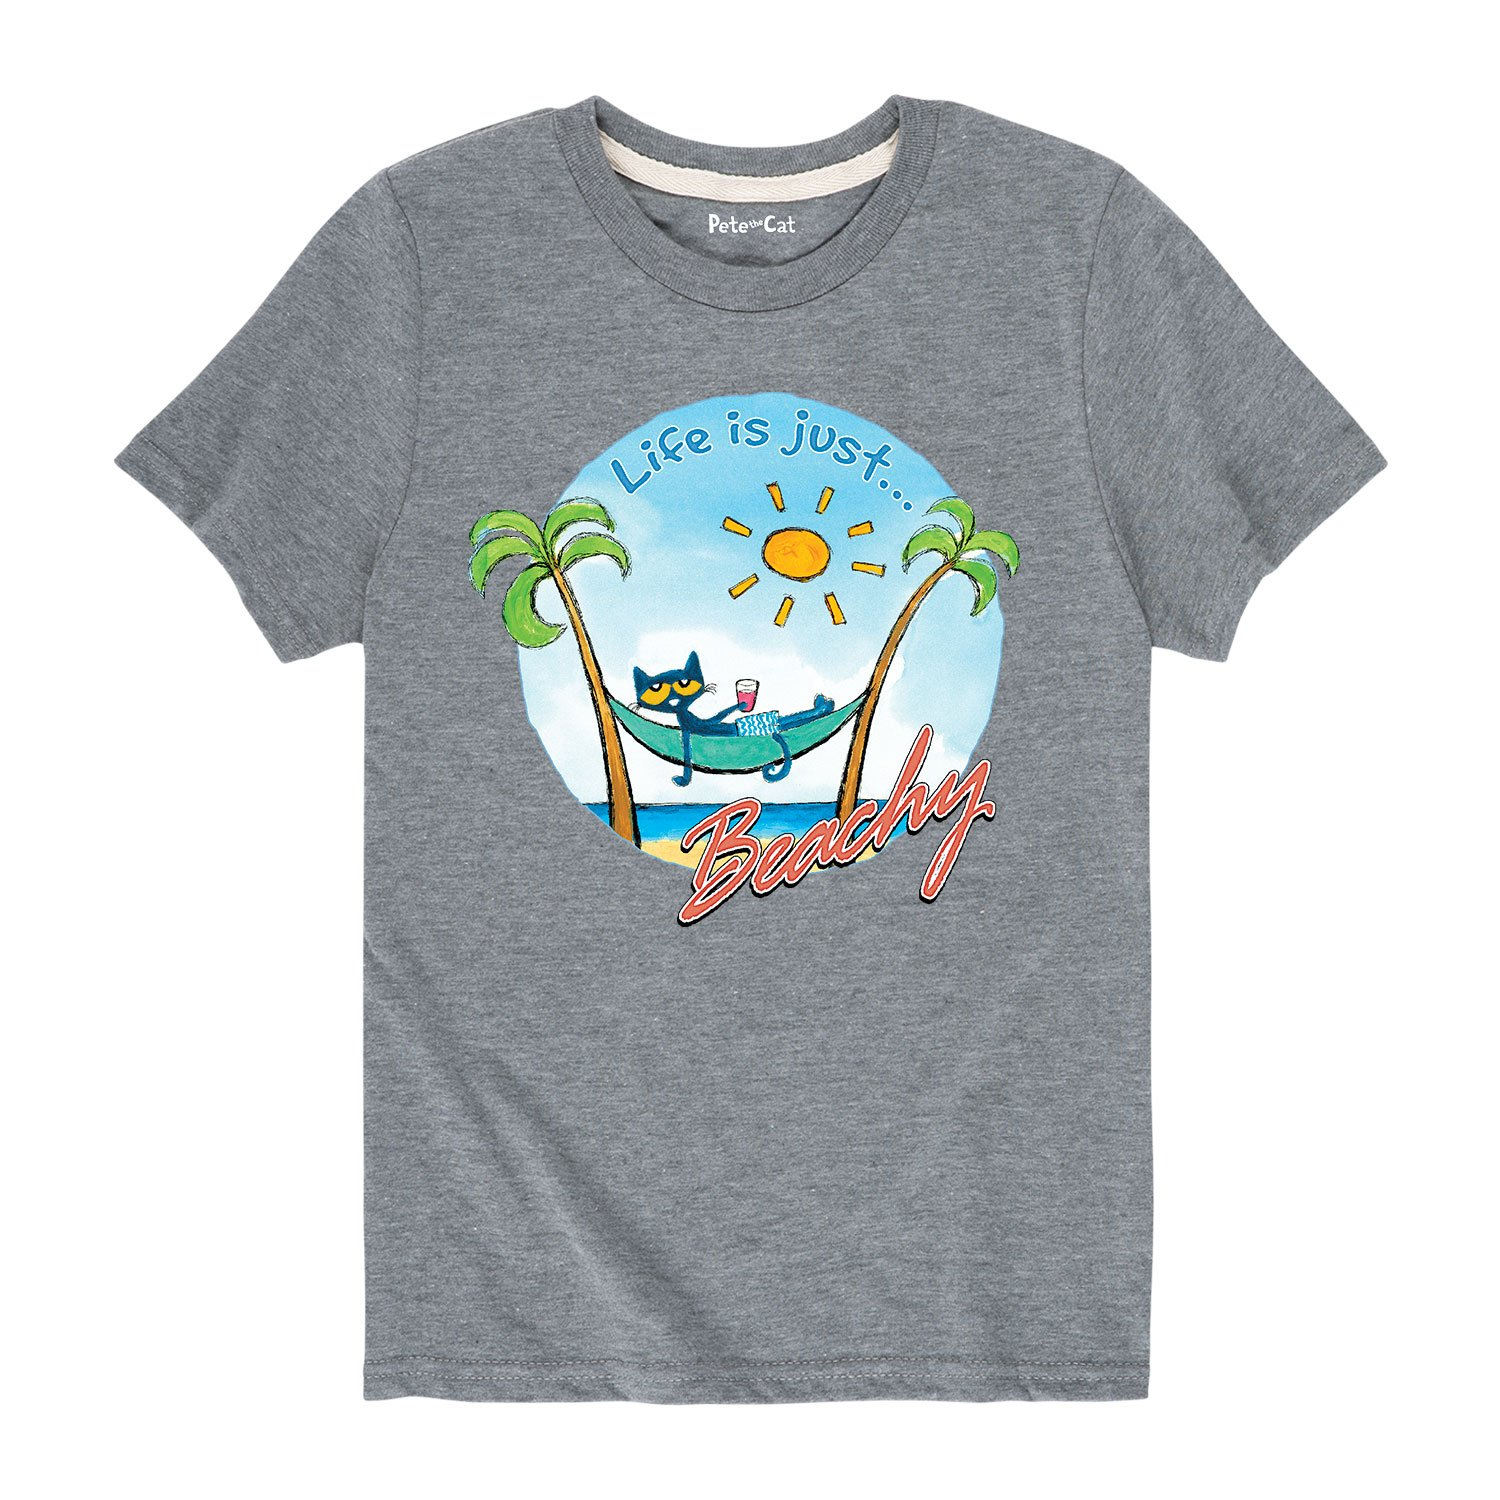 Toddler Short Sleeve Tee Pete the Cat Life is Just Beachy